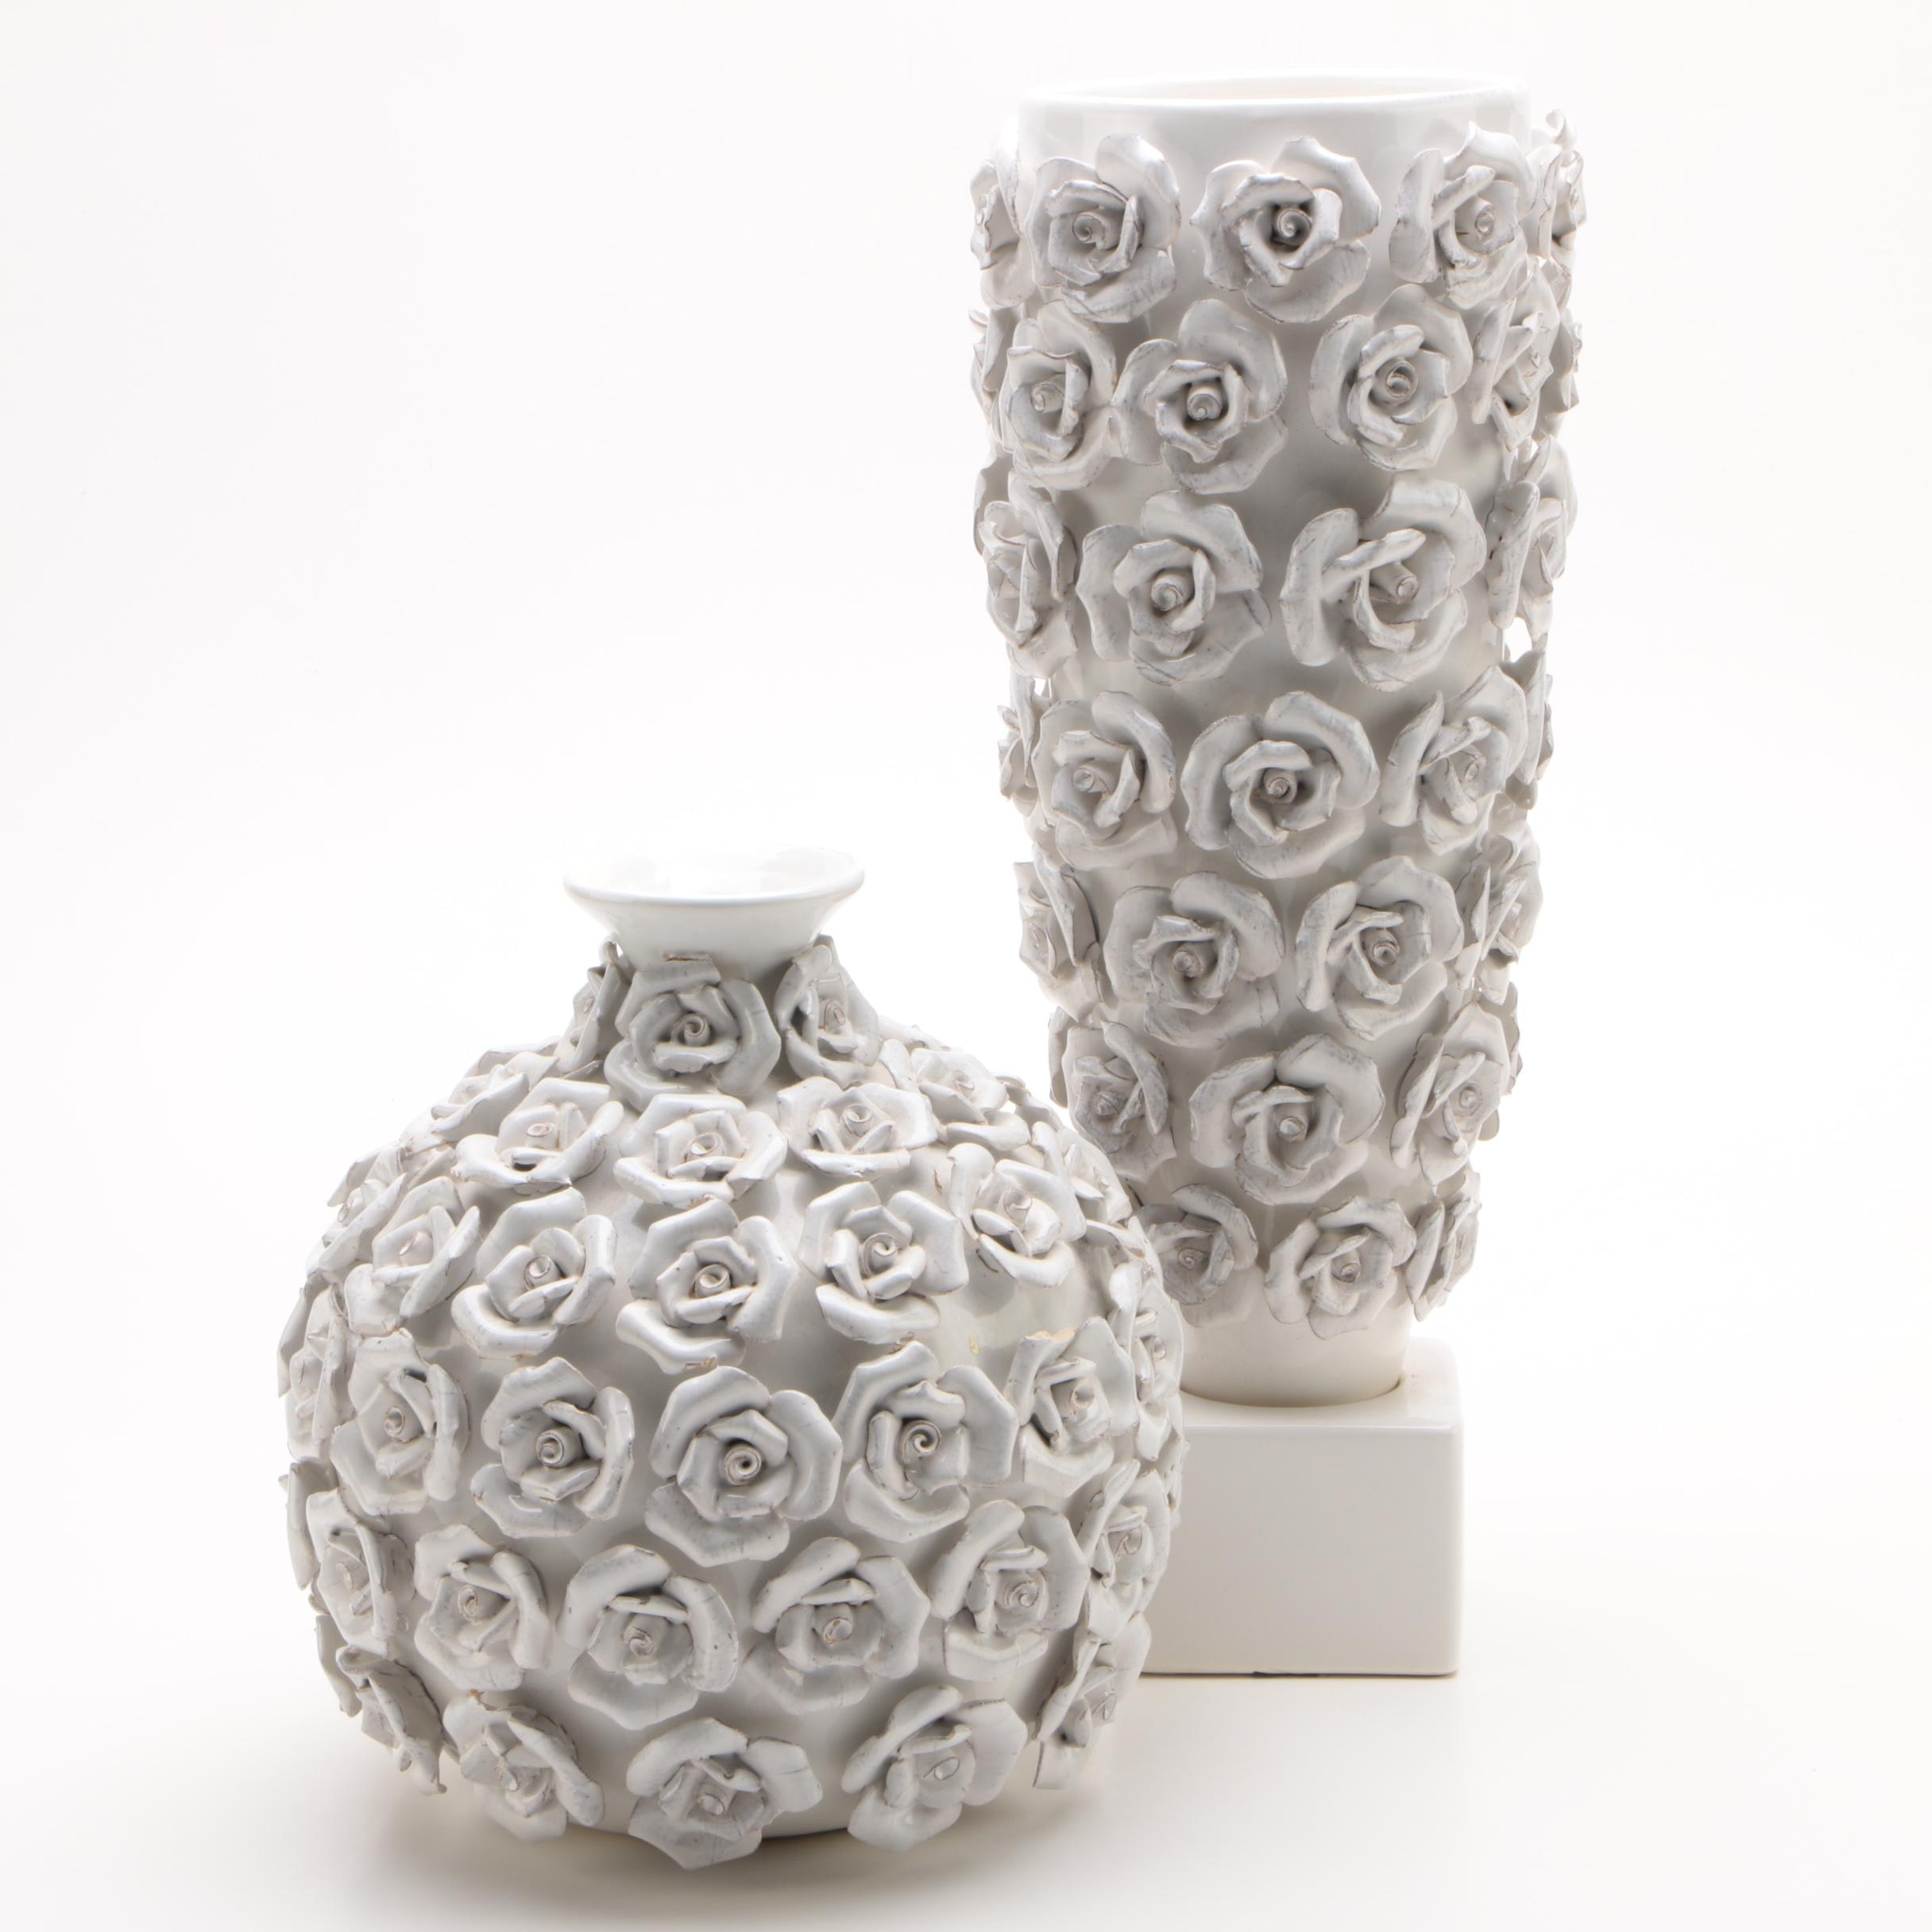 Contemporary Rose Motif Ceramic Vases by PTMD Collection